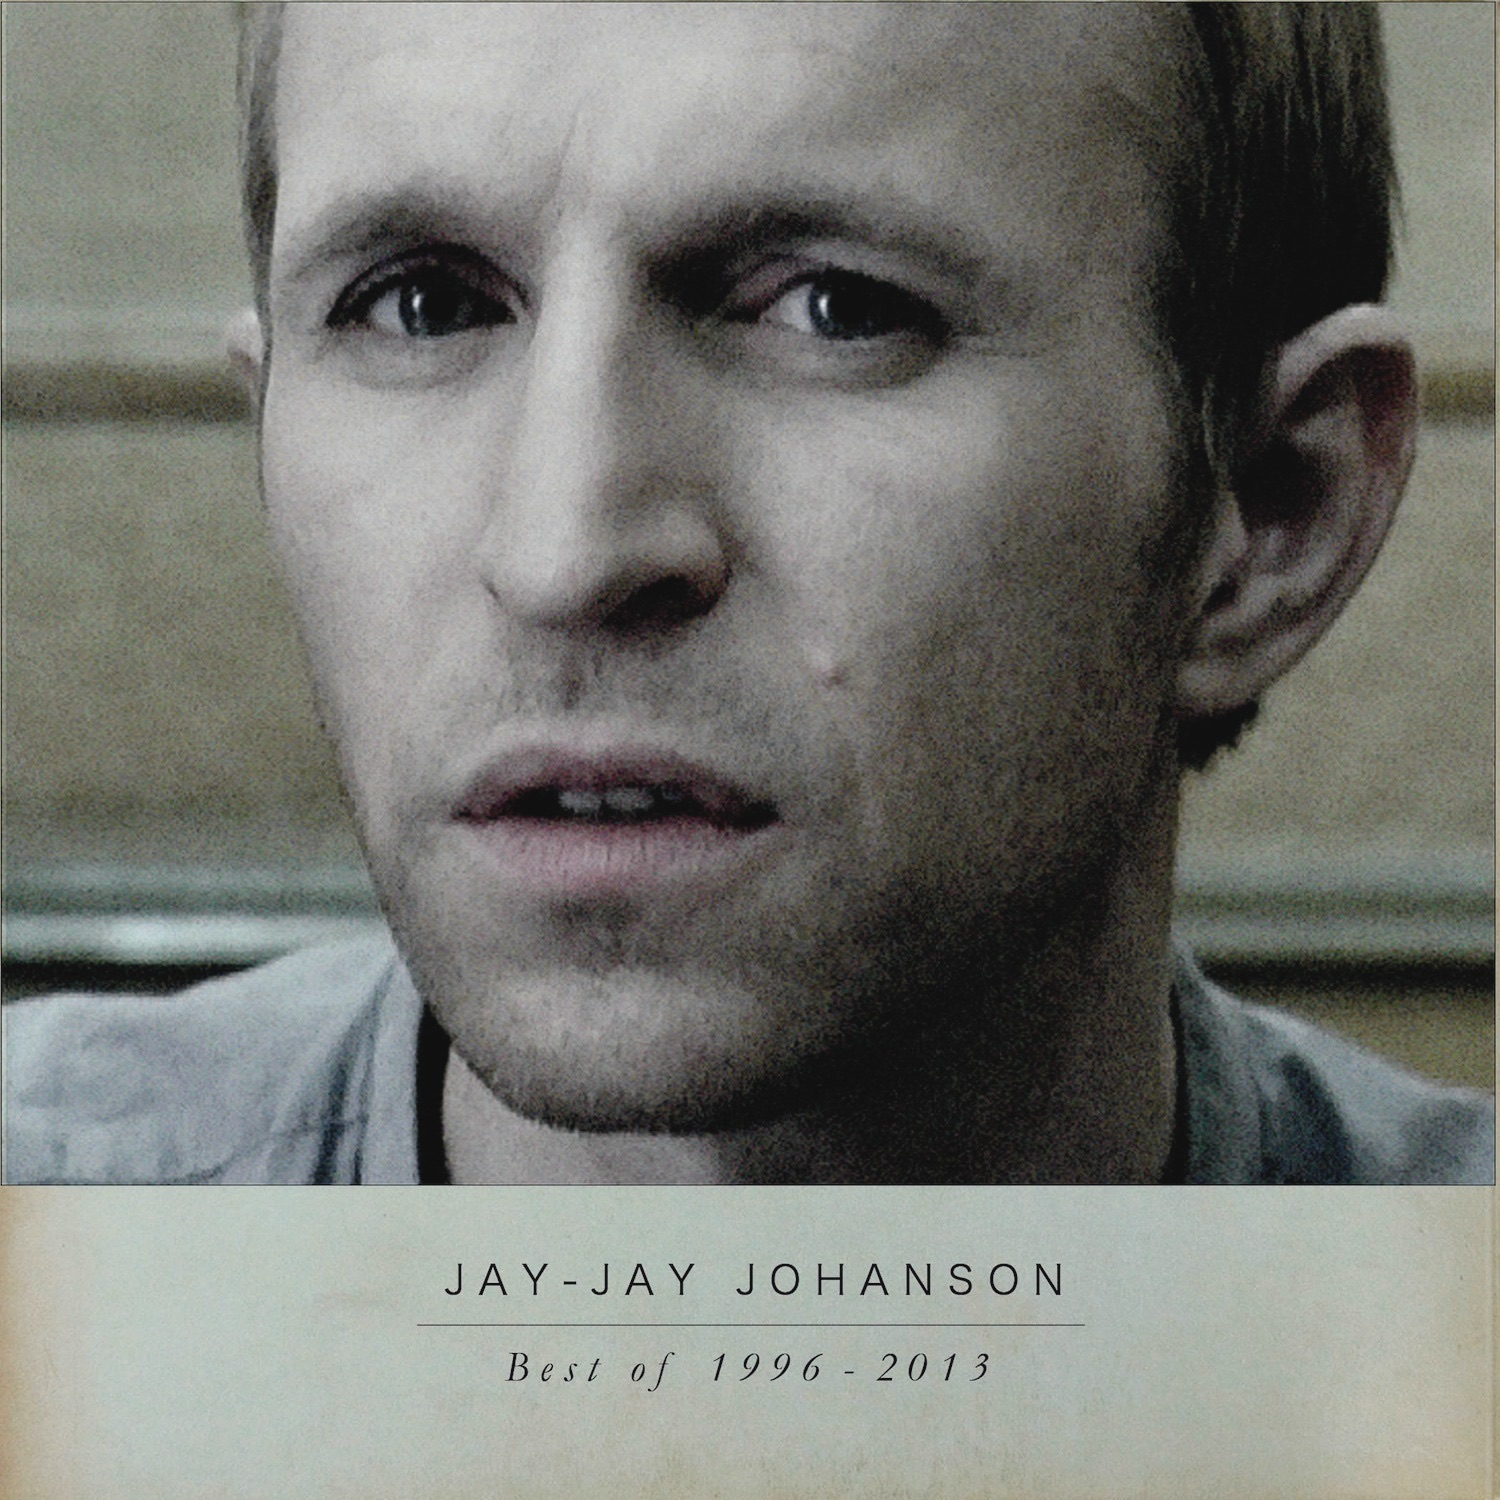 Jay-Jay Johanson album Best Of 1996-2013